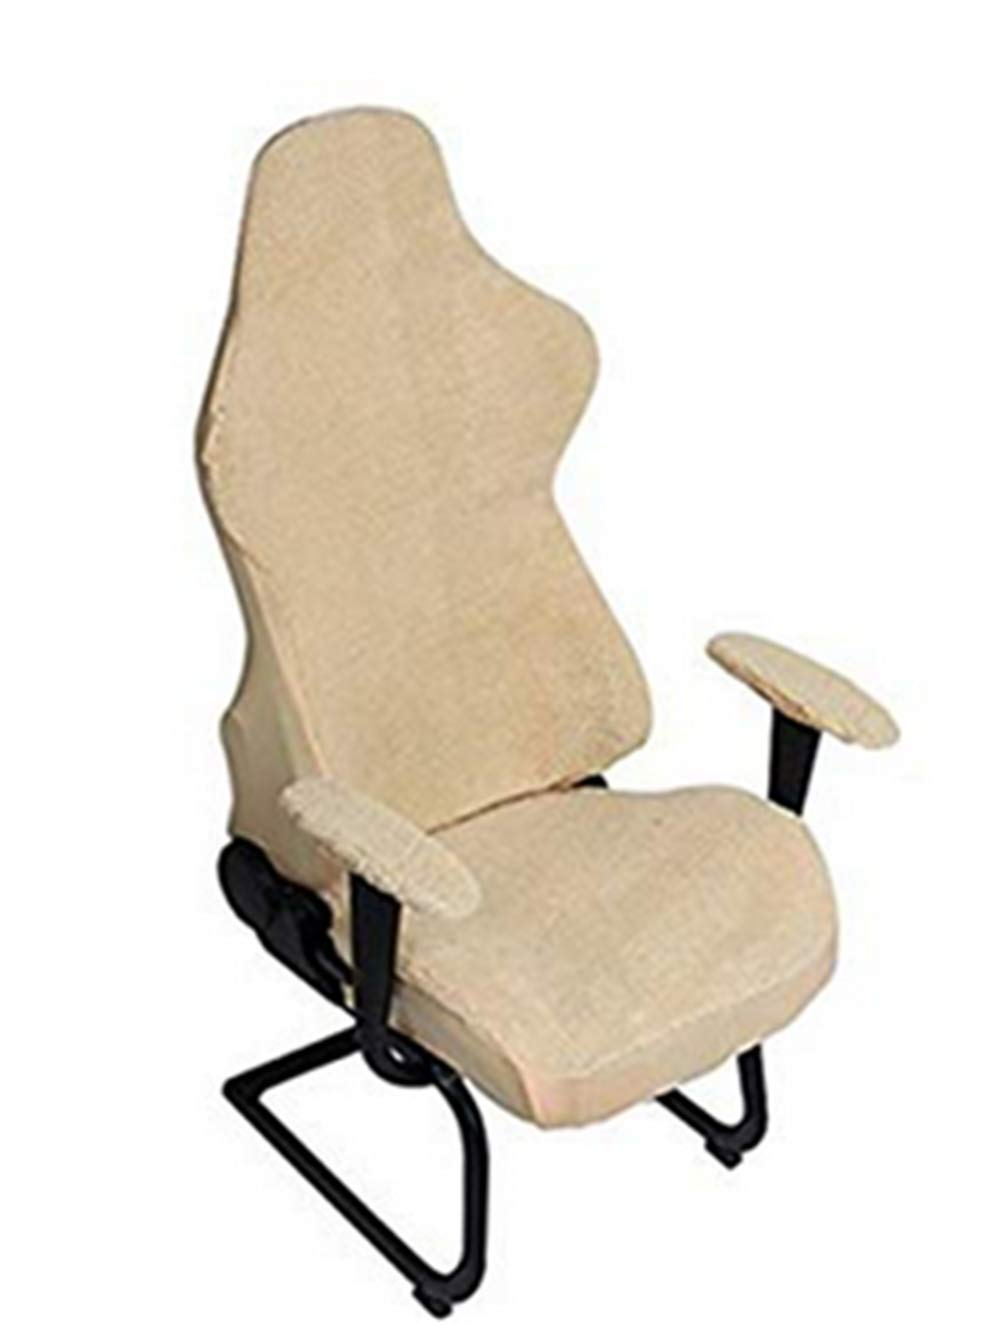 Zerci Universal Computer Chair Cover Game Racing Chair Slipcover Washable Chair Protect Cover (Beige) by Zerci (Image #1)